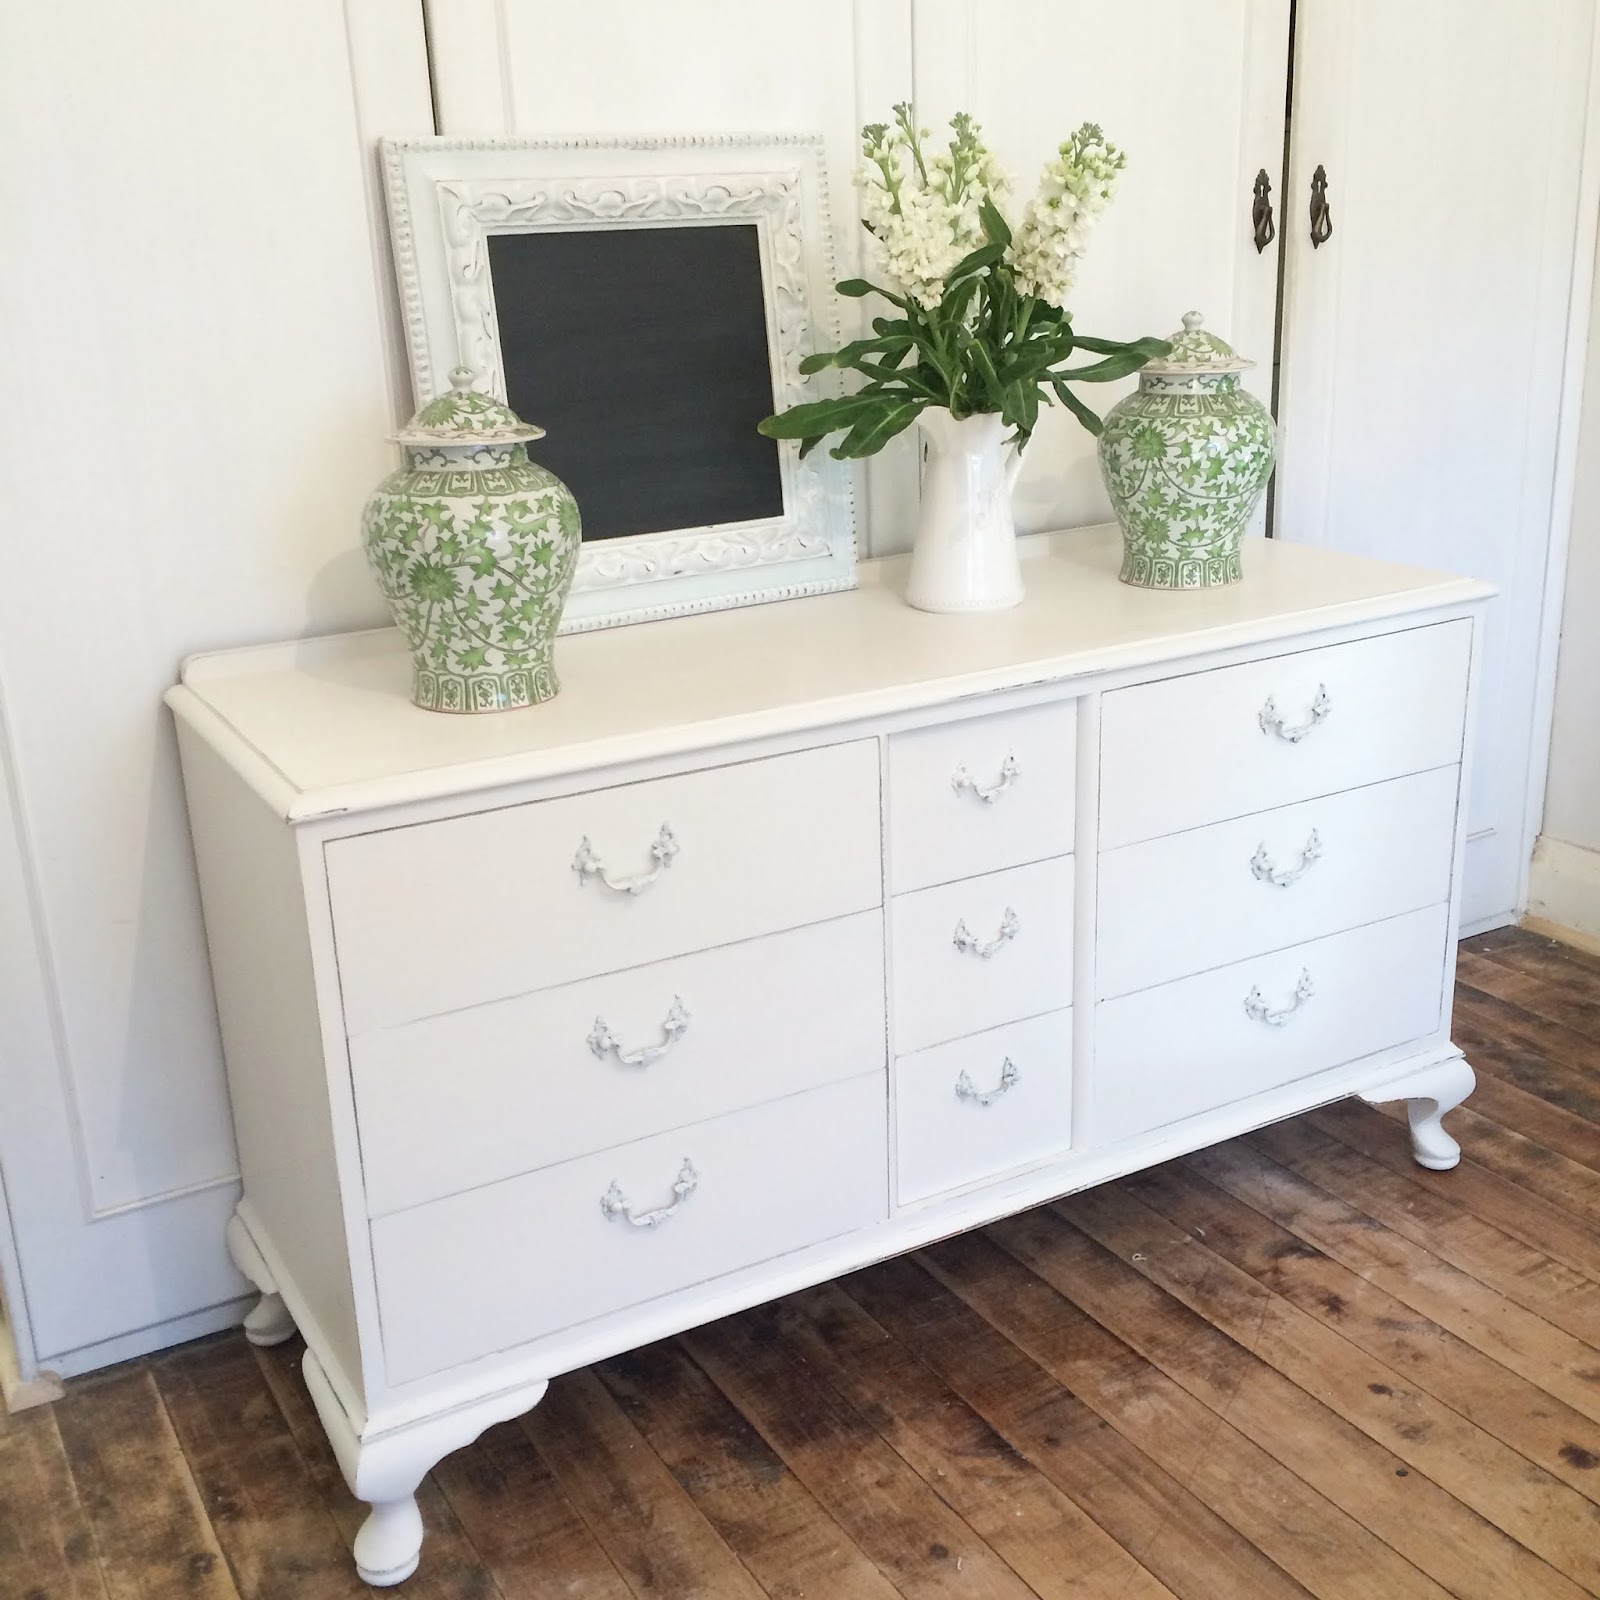 Bedroom Couch: Lilyfield Life: Painting Bedroom Furniture White